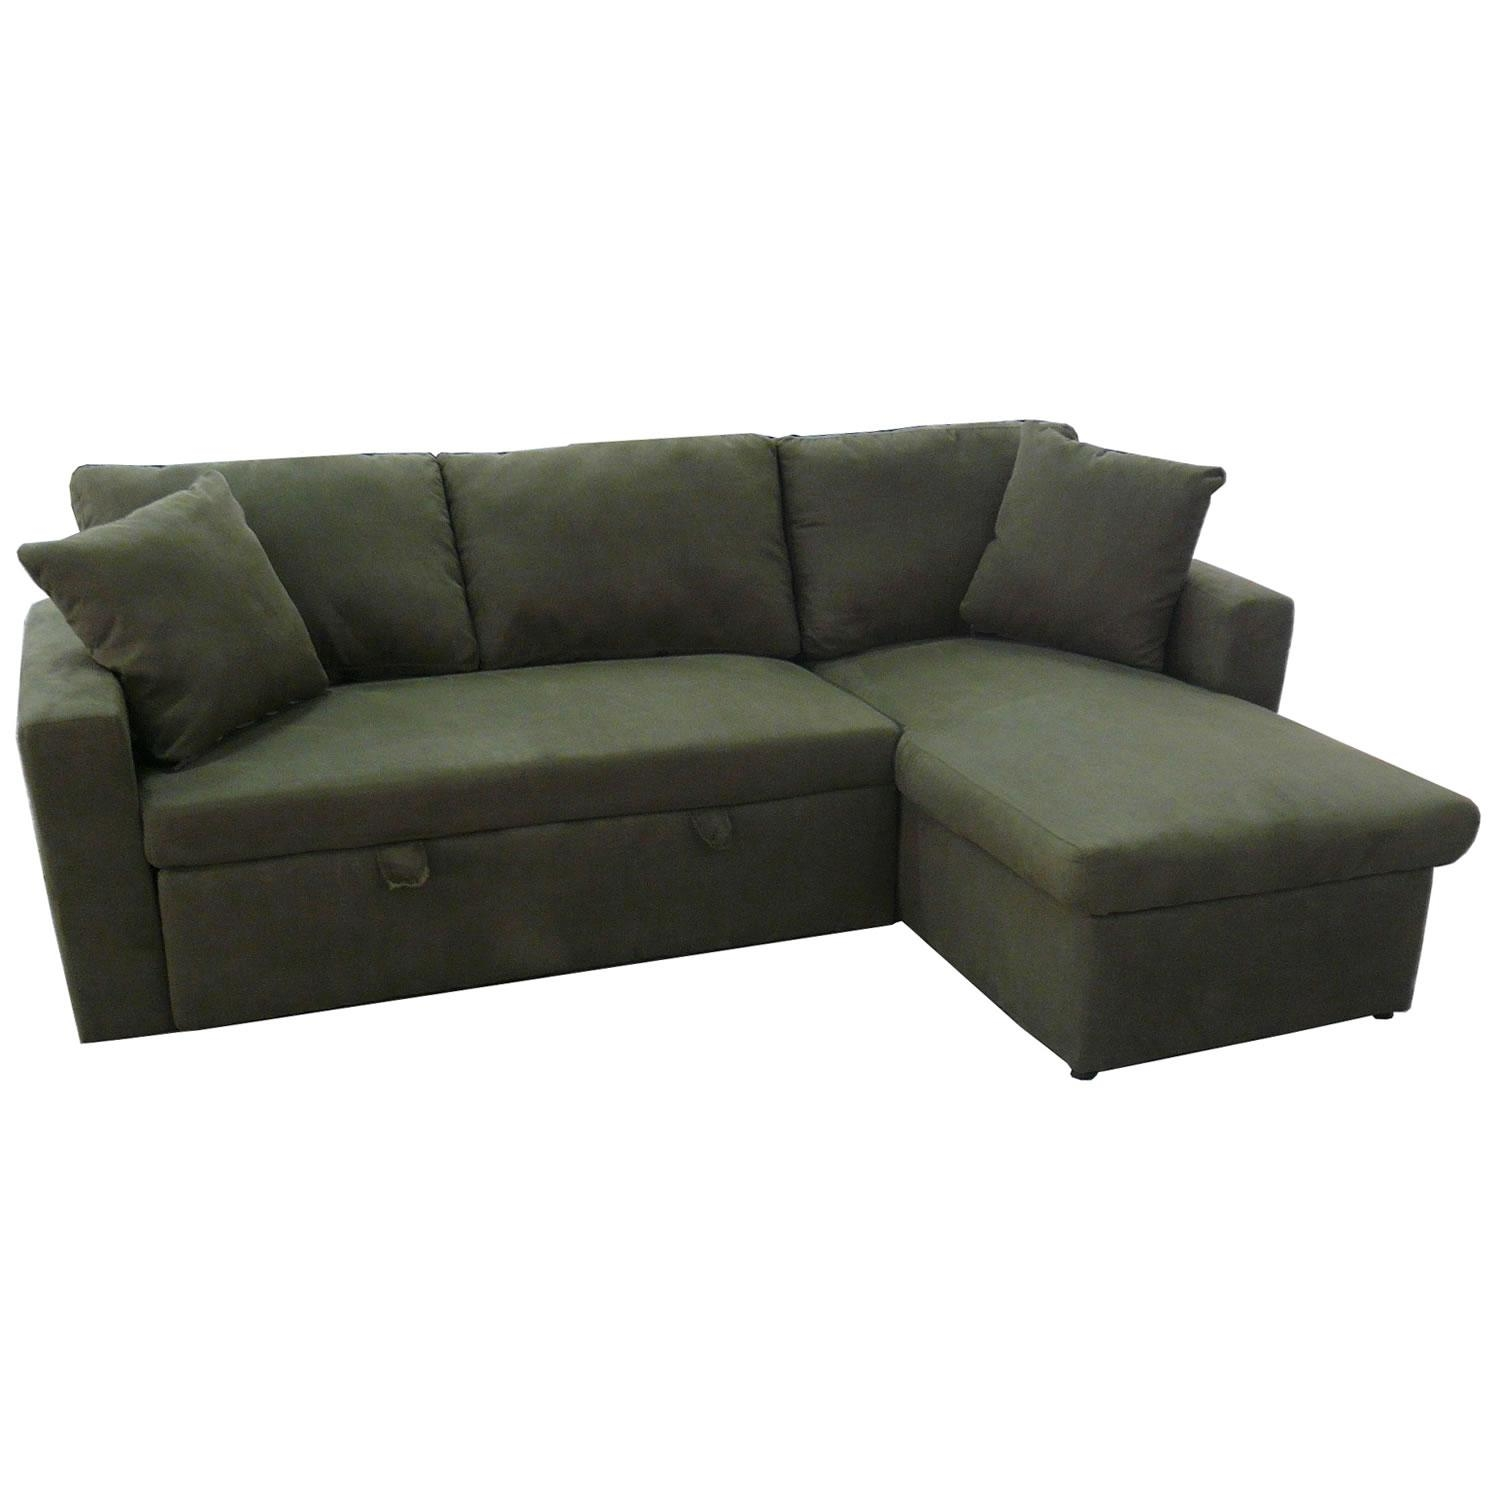 Small Corner Sofa Bed With Storage | Tehranmix Decoration Pertaining To Cheap Corner Sofa Beds (View 8 of 20)